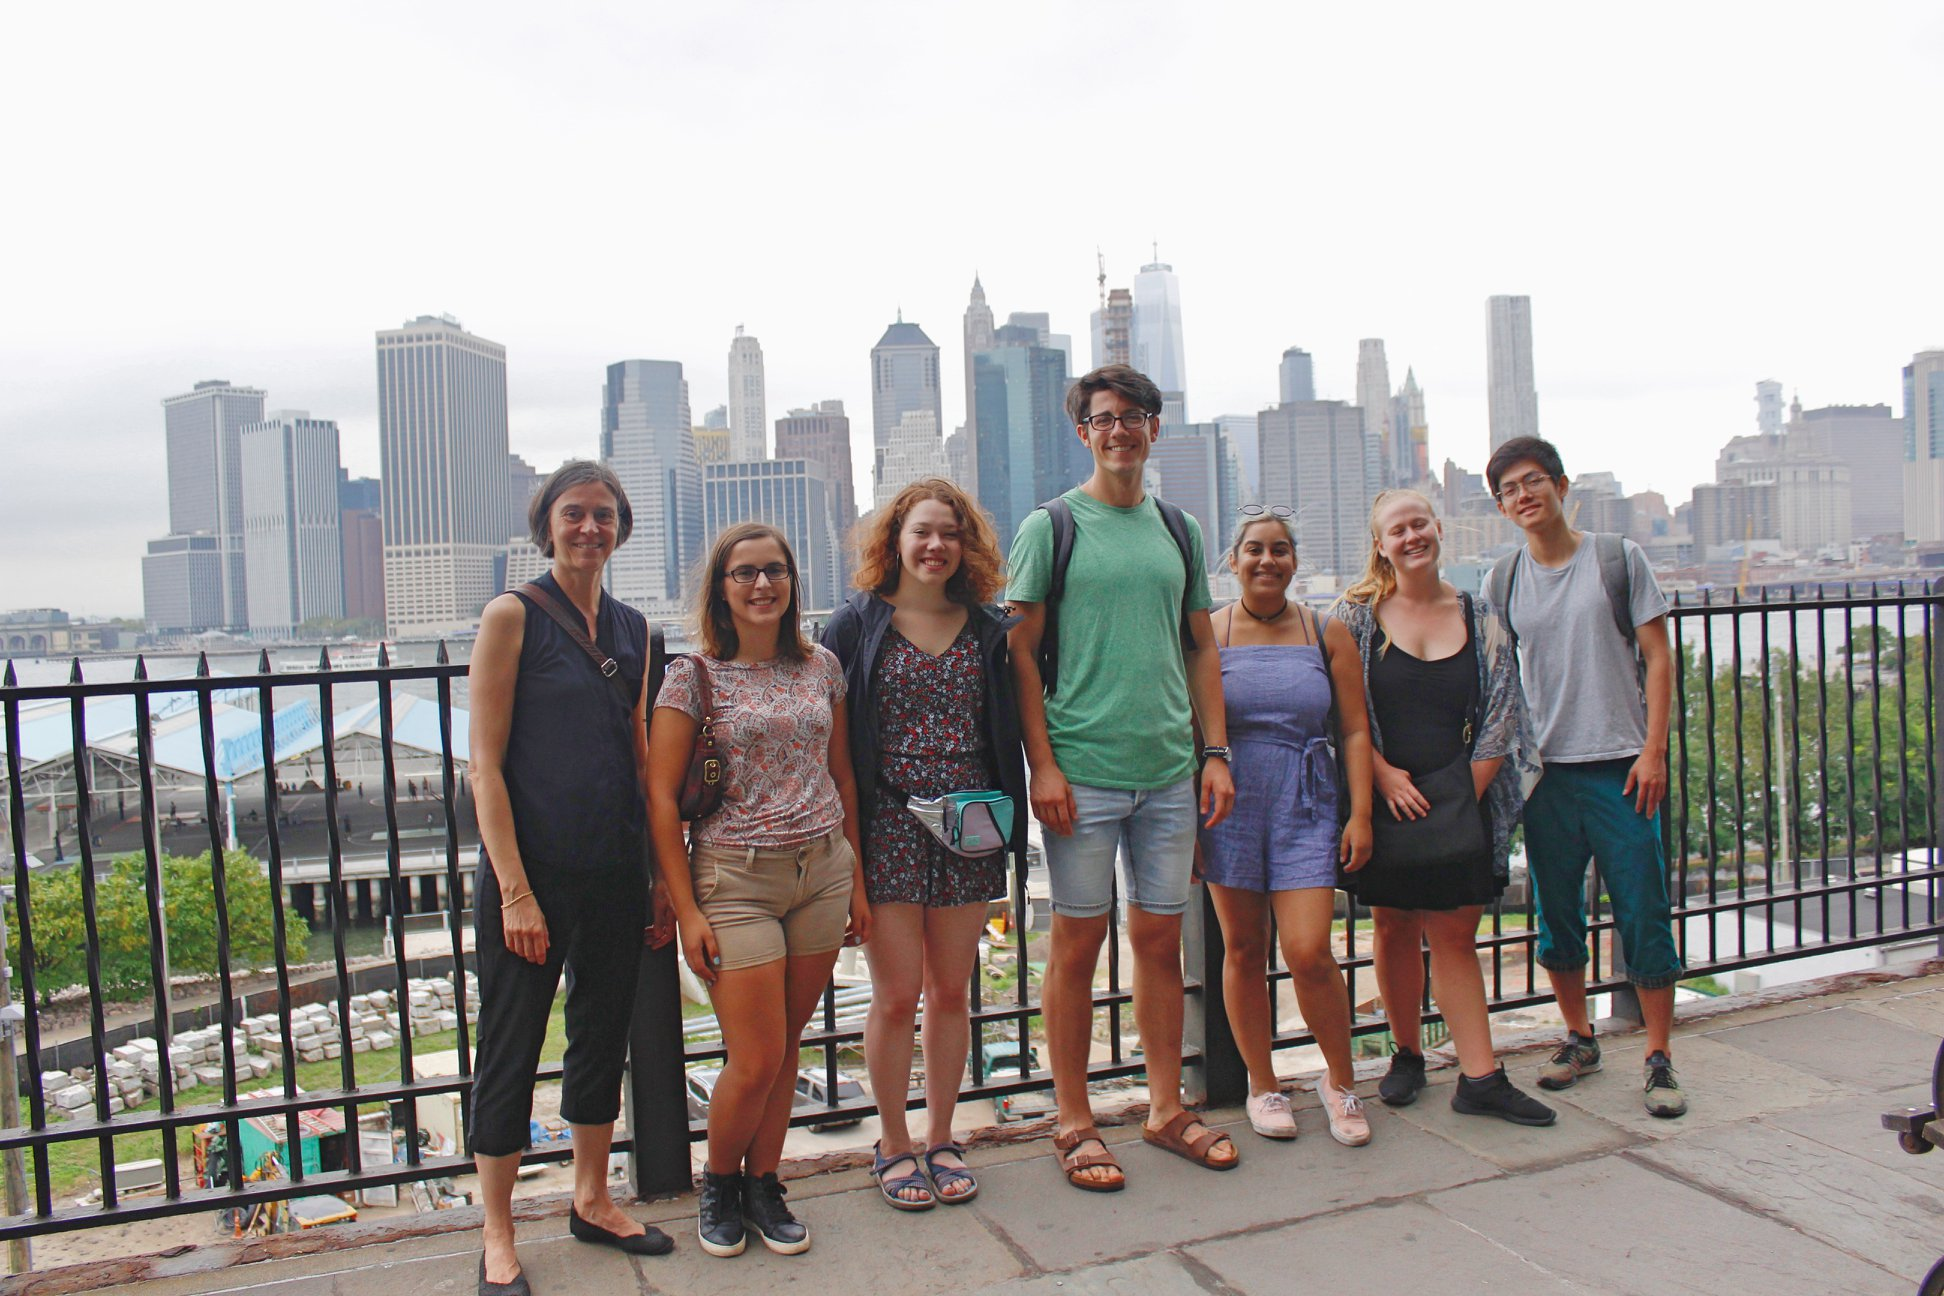 Trinity La MaMa students posing in a group outside in New York City